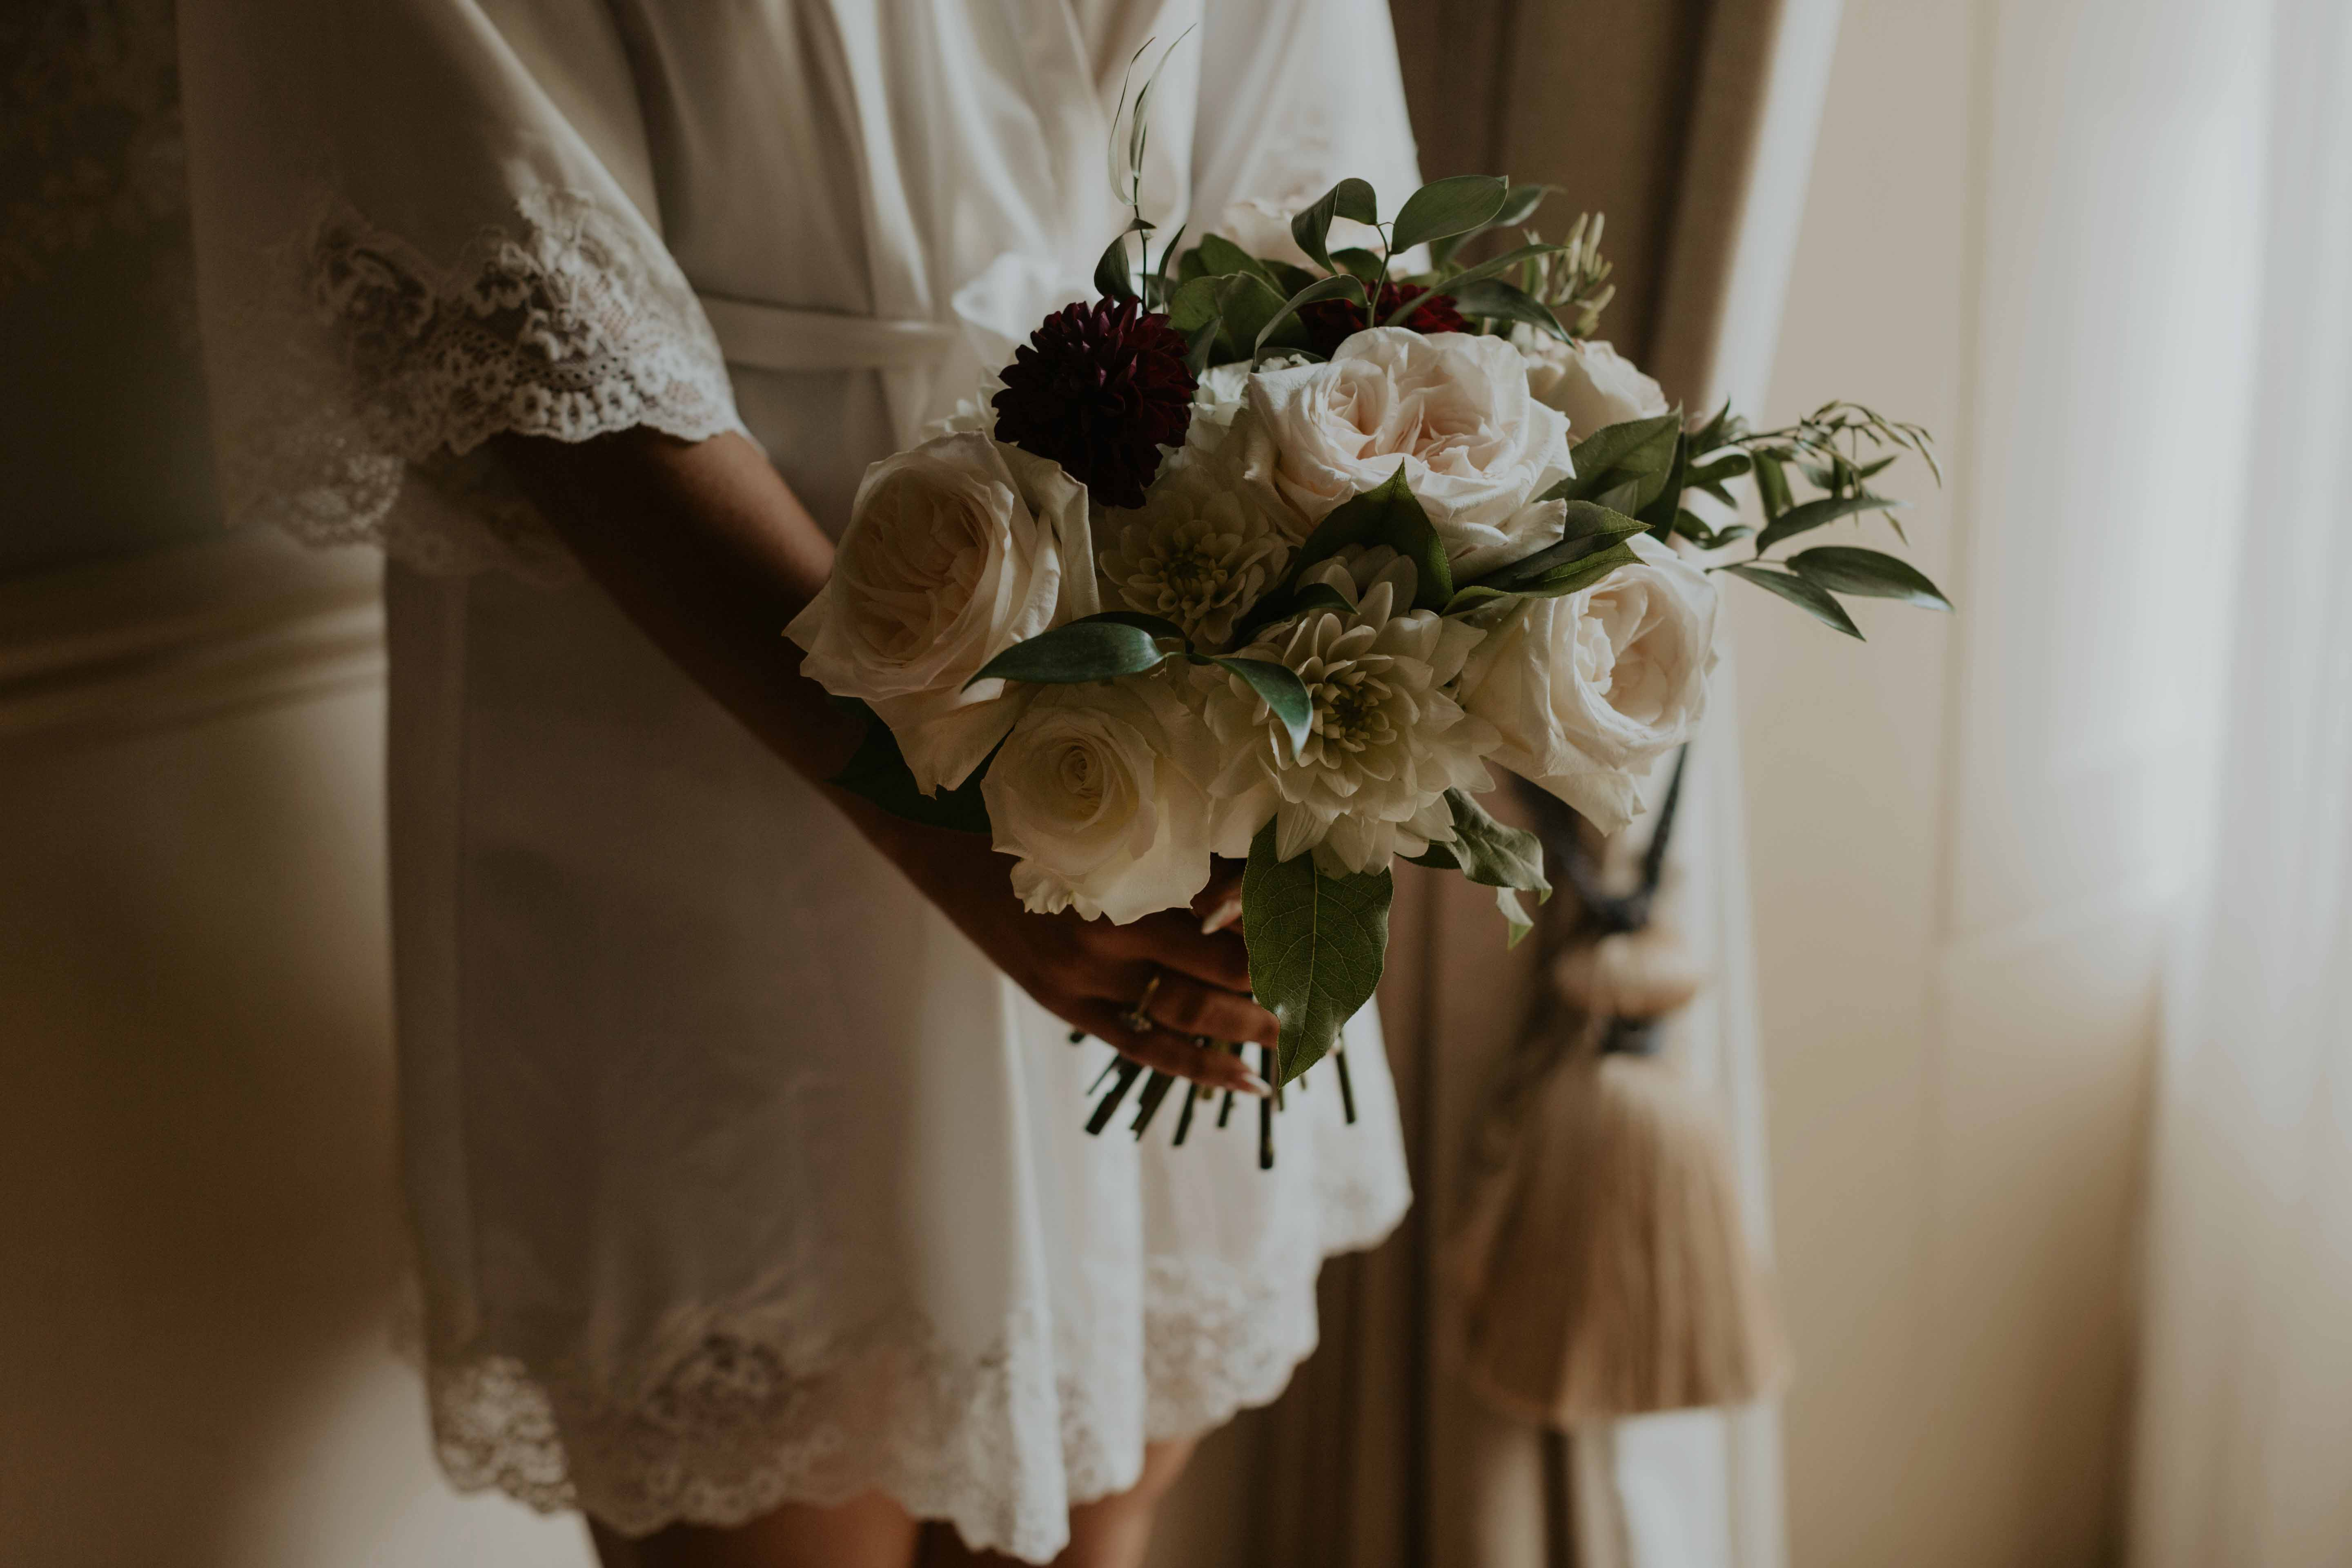 Bride holding bouquet robe.